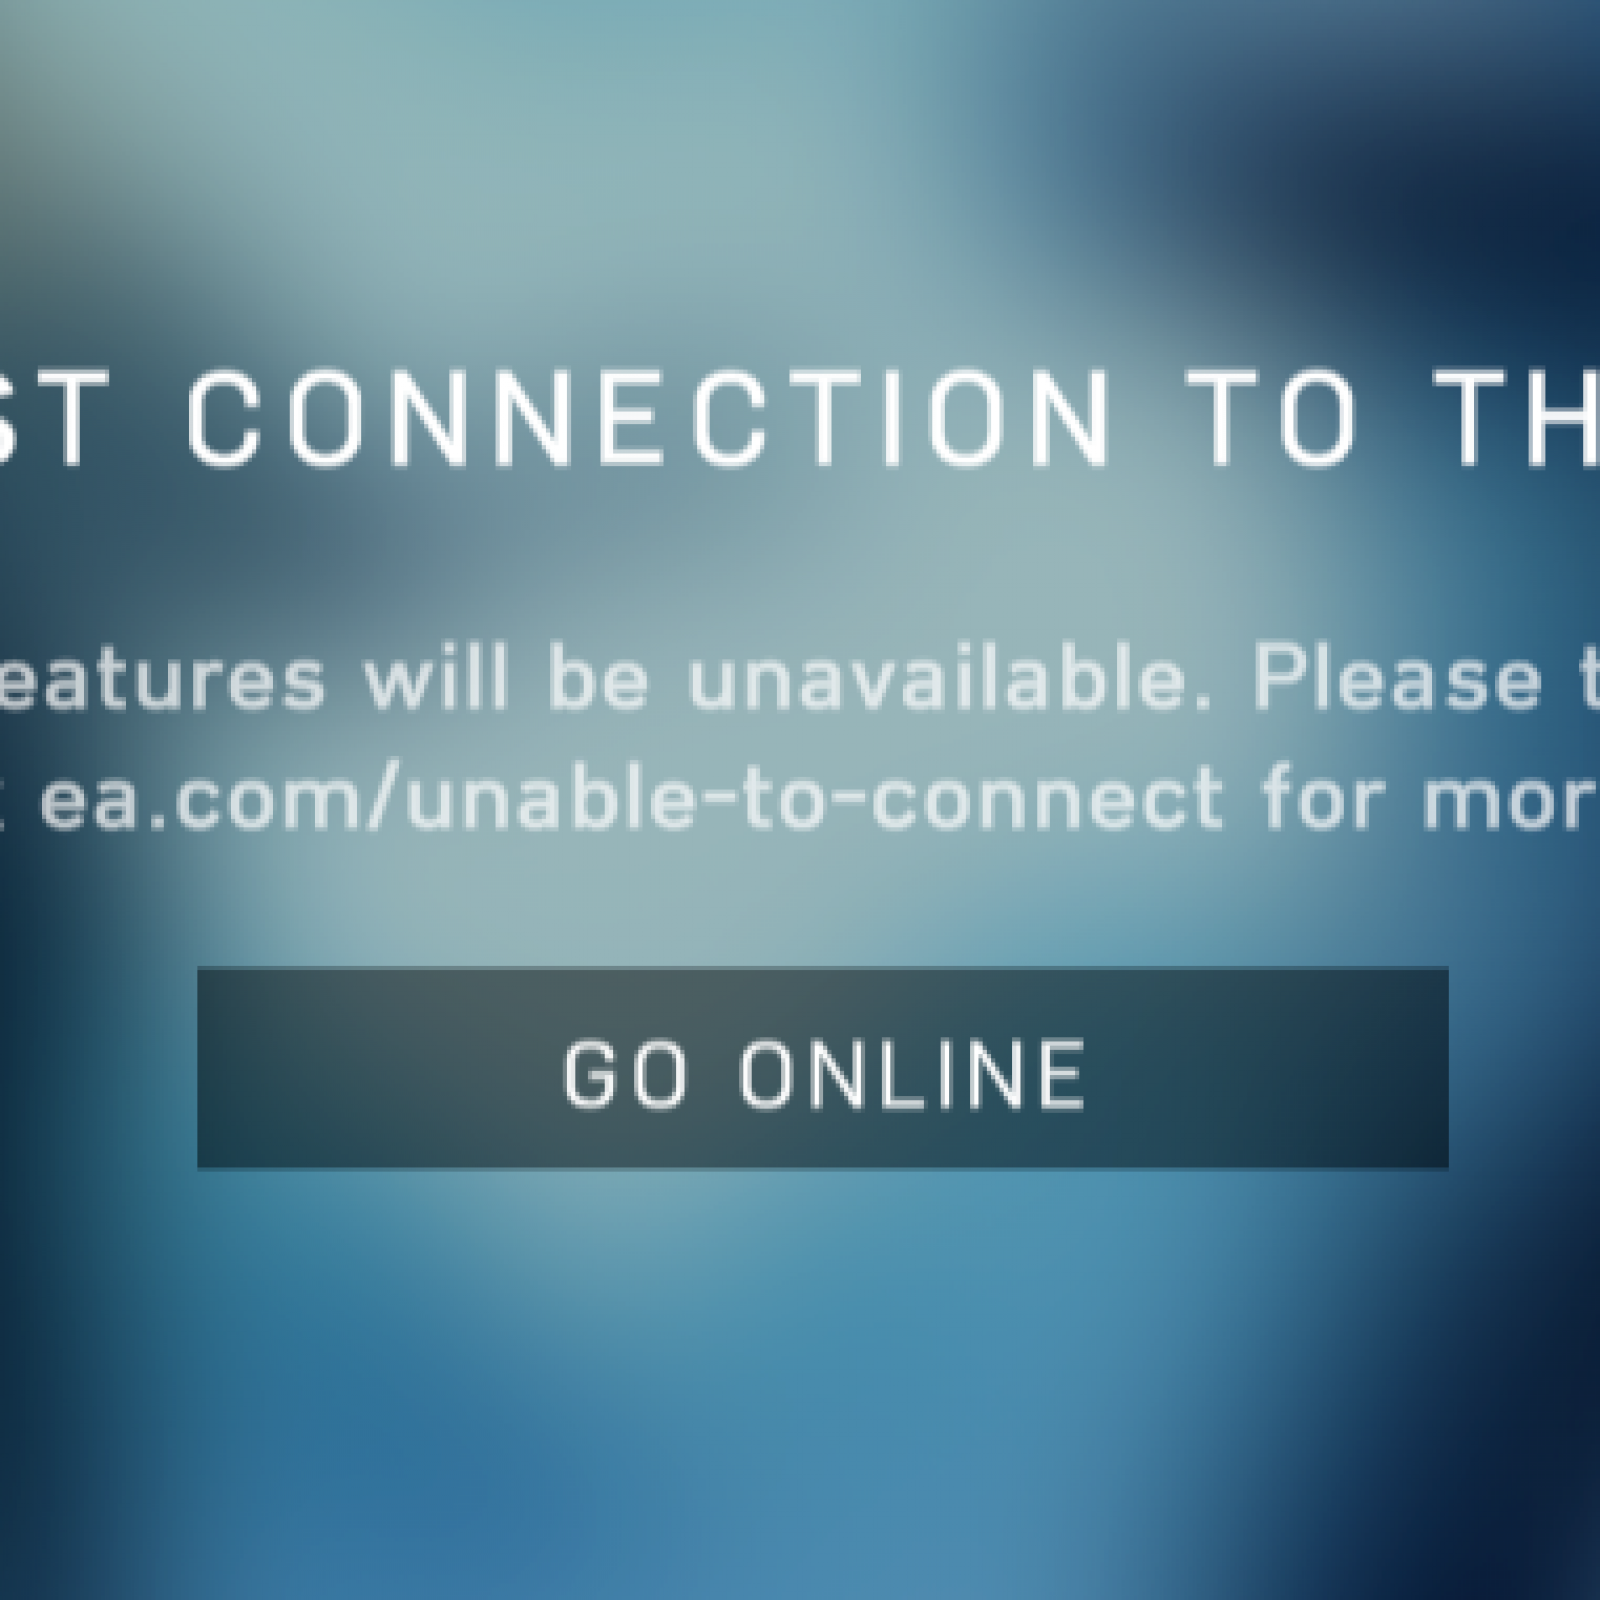 Battlefield 5' Servers Down & Not Working, EA Responds to